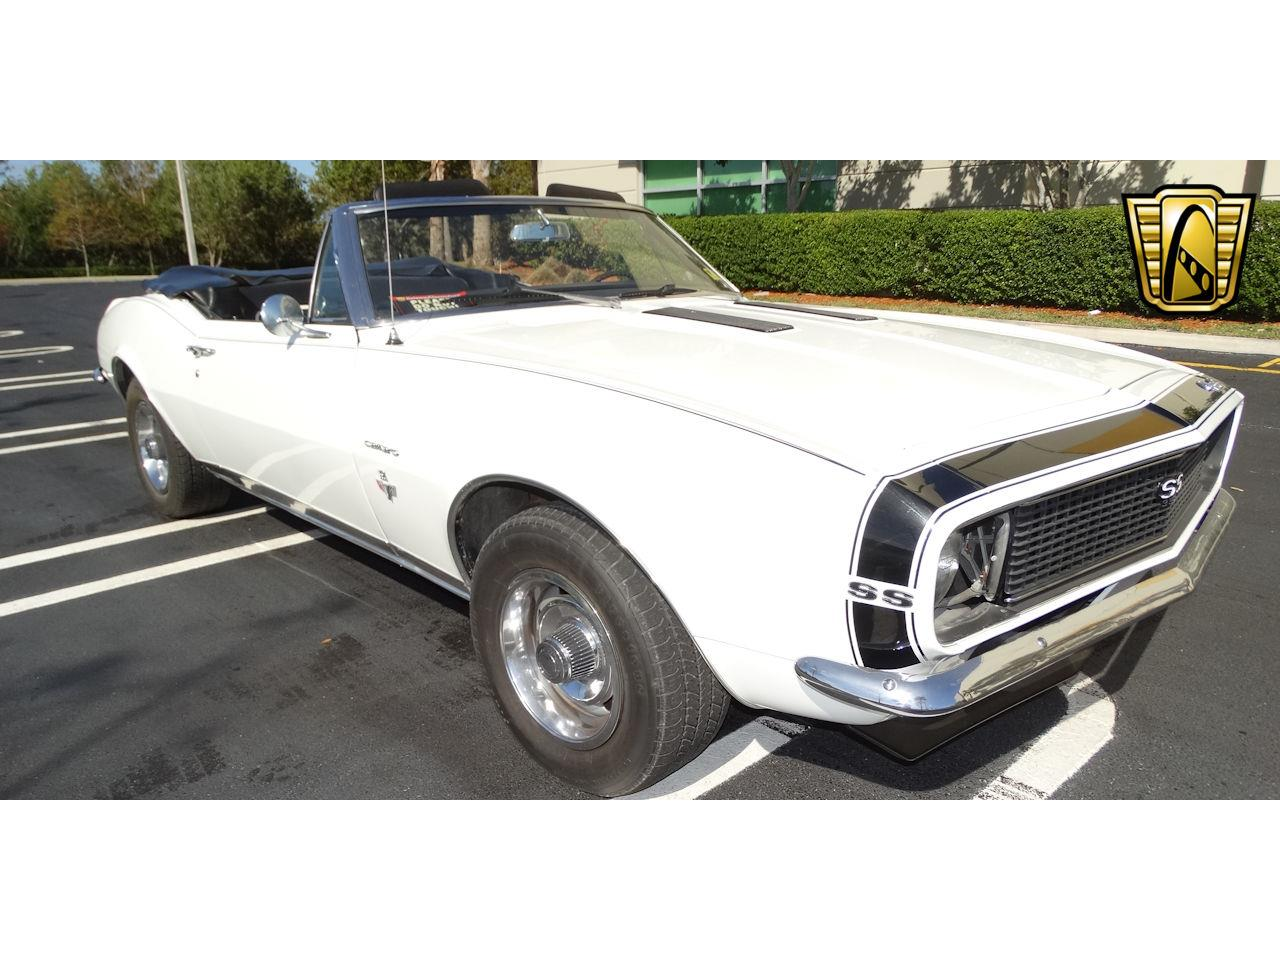 Large Picture of Classic '67 Chevrolet Camaro located in Coral Springs Florida - $39,995.00 Offered by Gateway Classic Cars - Fort Lauderdale - LH15